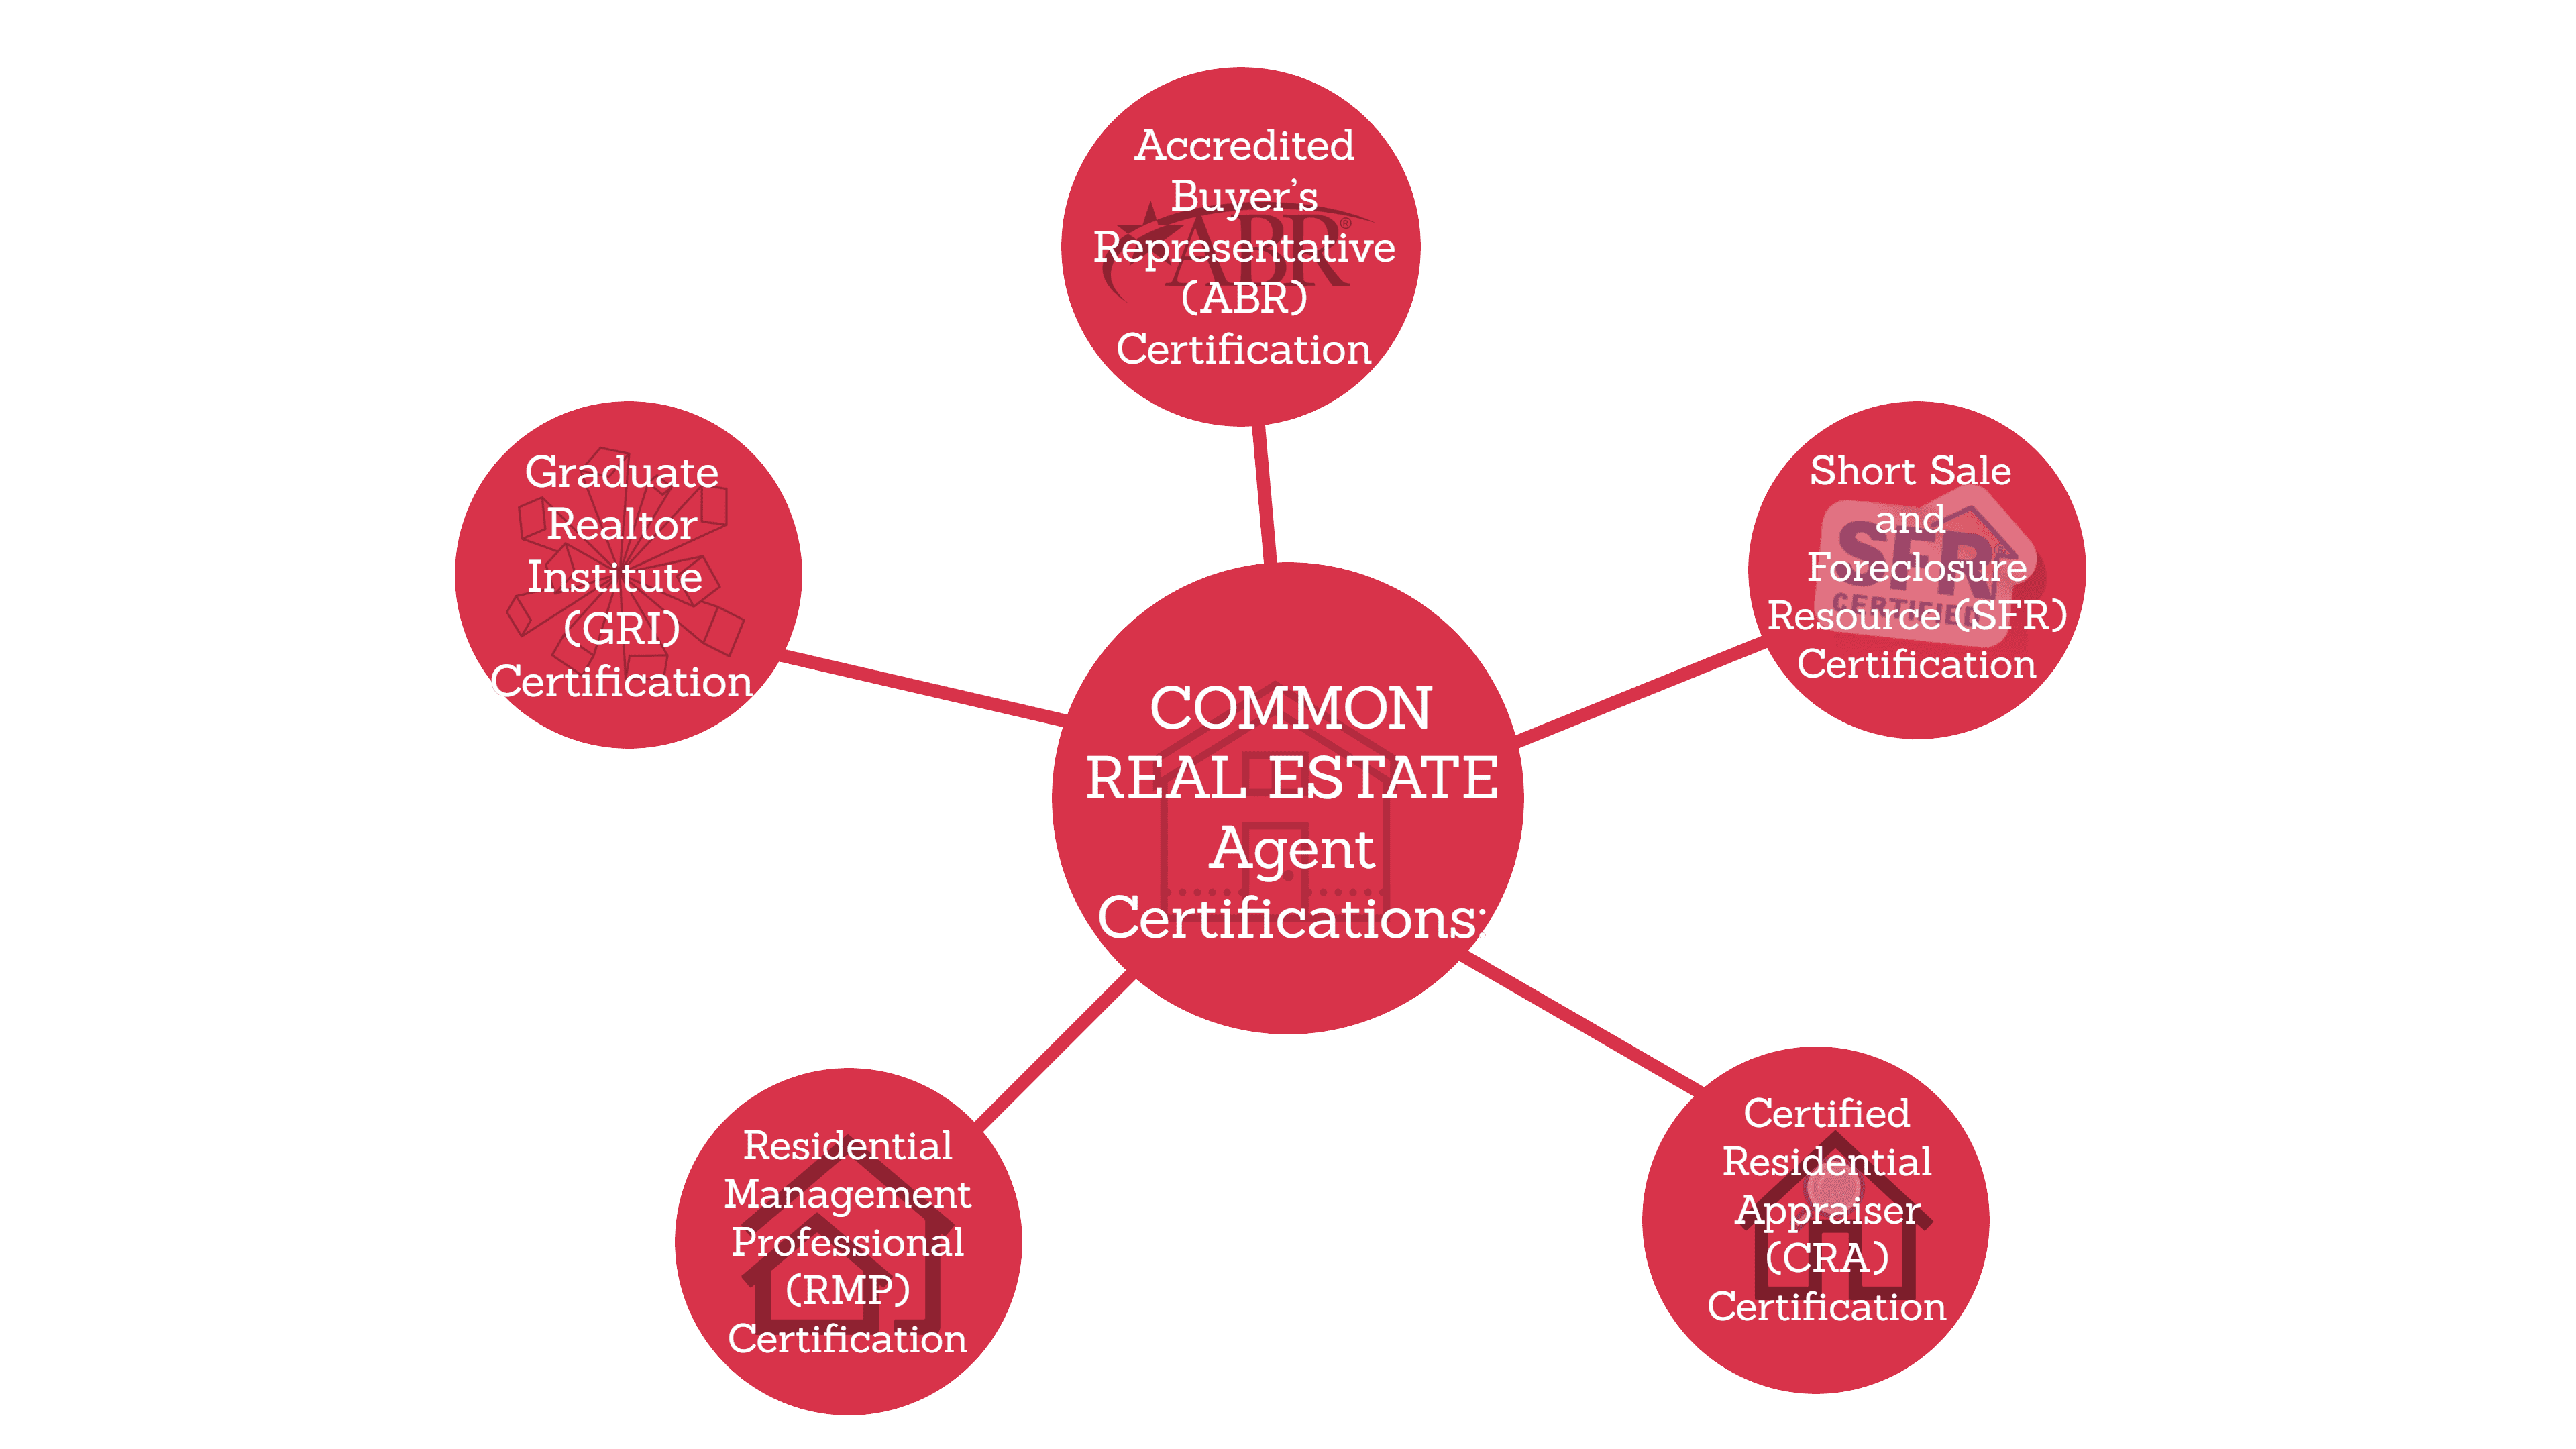 Real Estate certifications